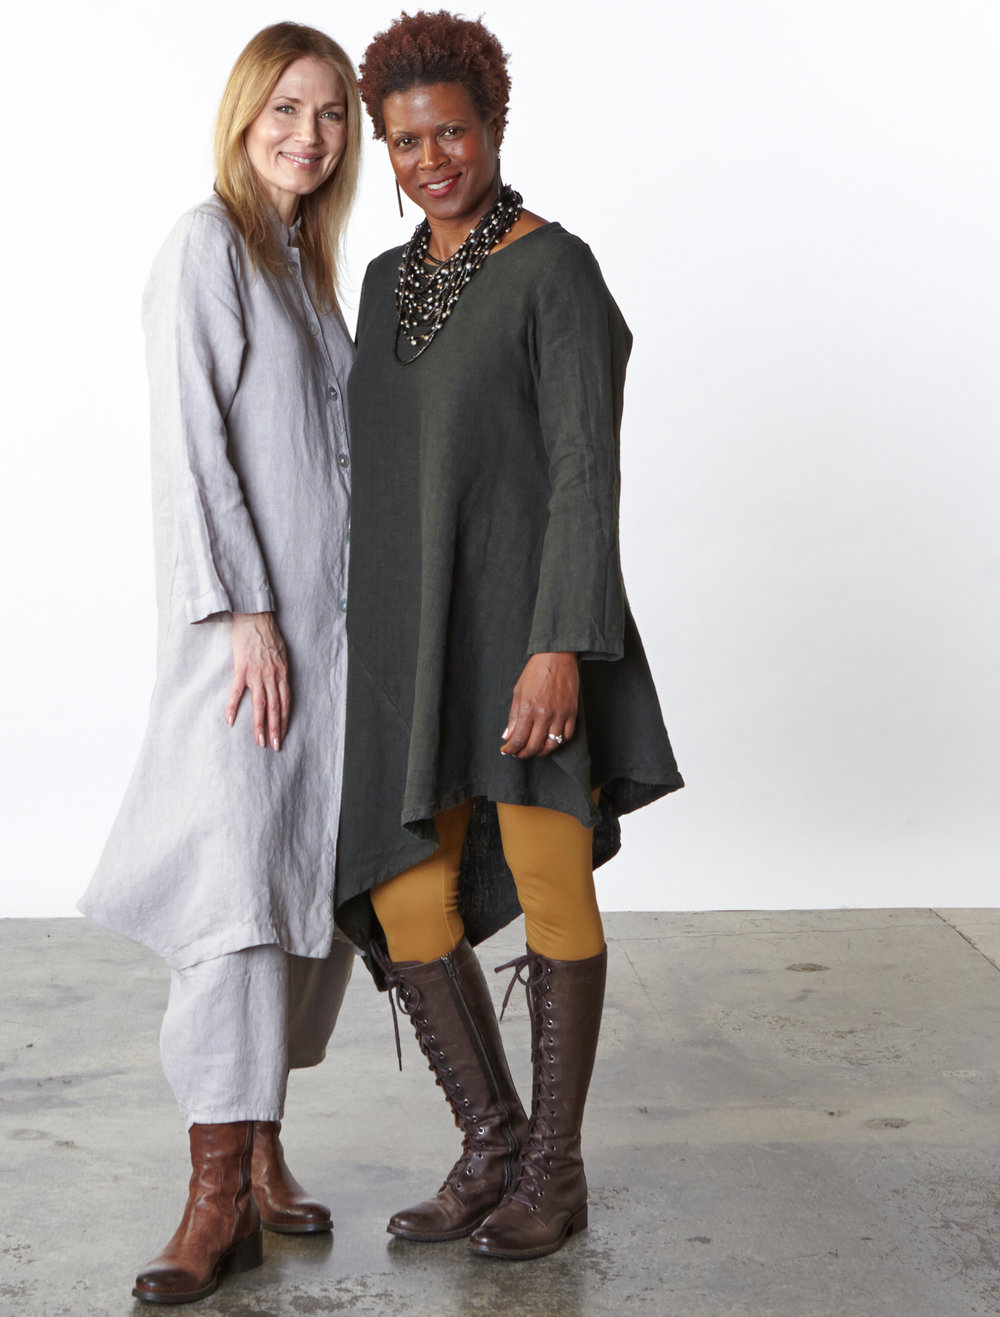 Llewellyn Jacket, Oliver Pant in Daikon, Nada Tunic in Huntress Heavy Linen, Legging in Camel Modal Ponti